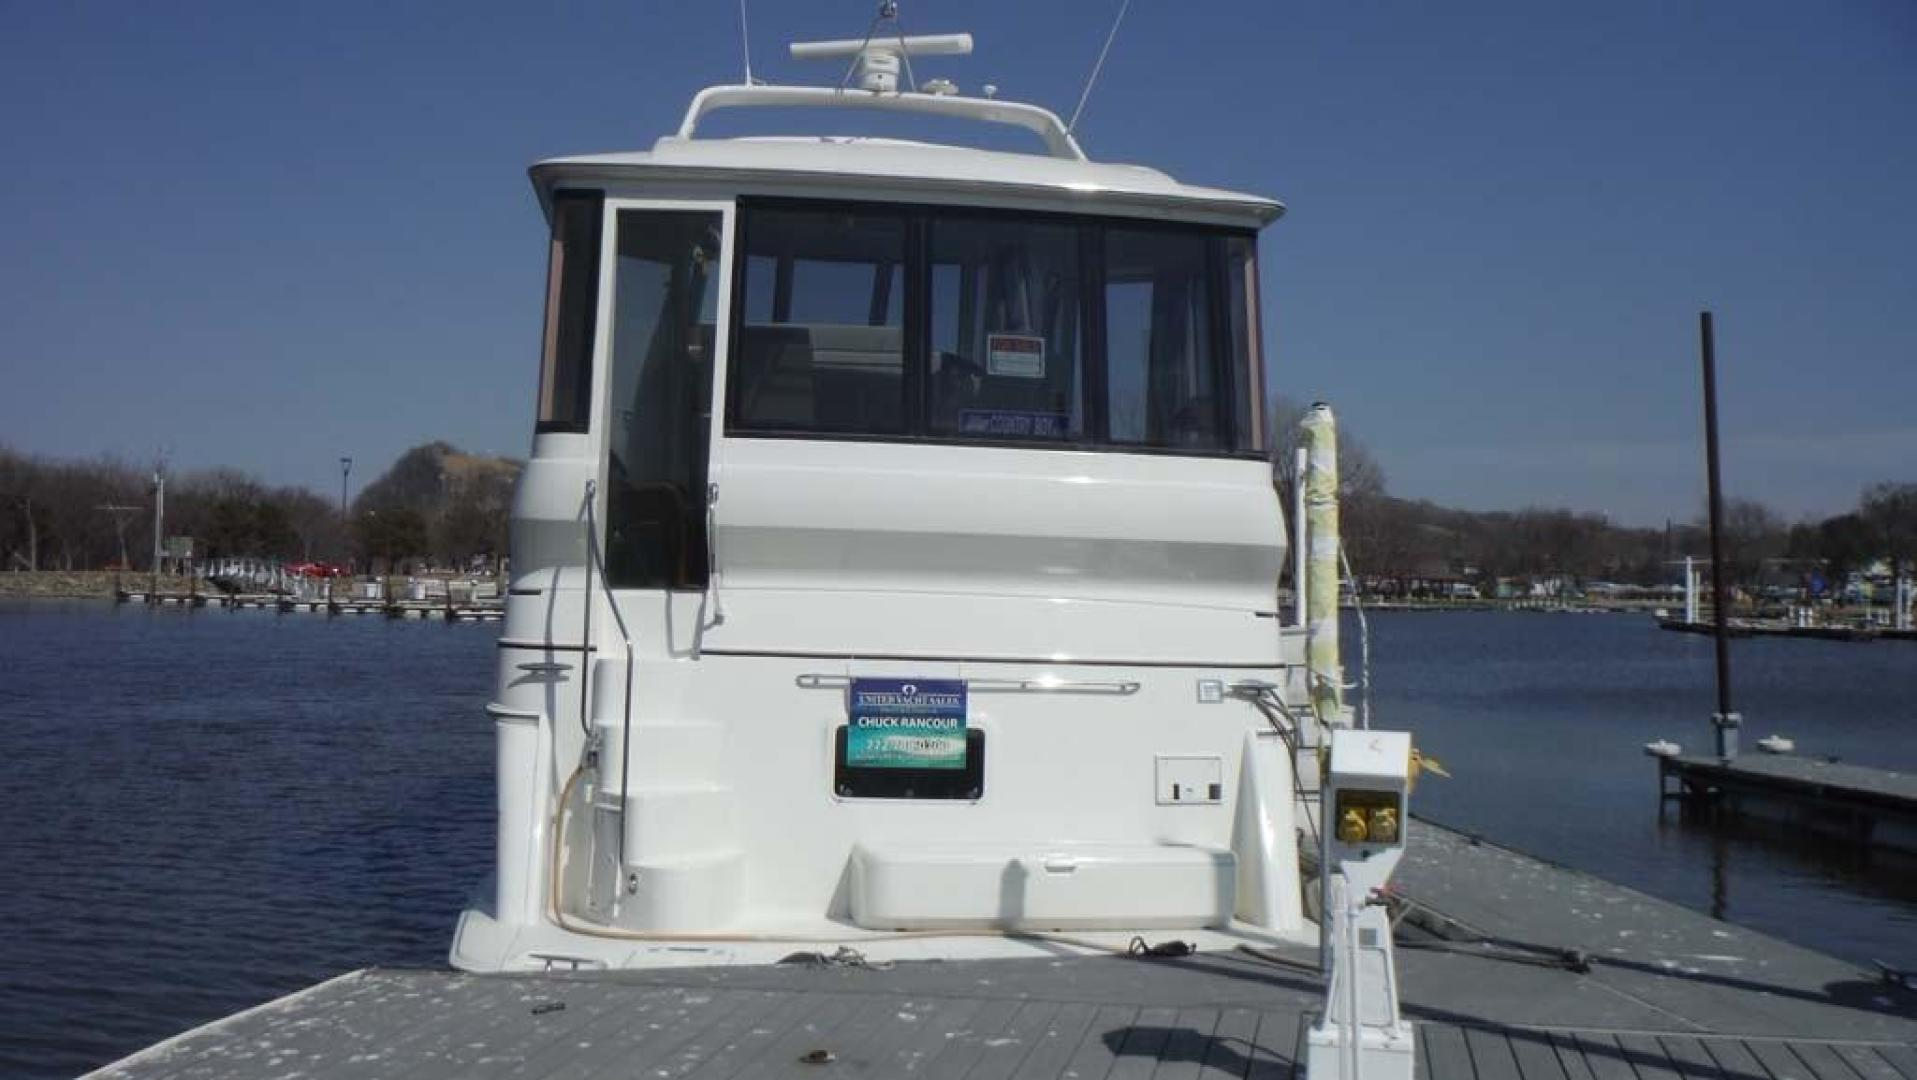 Carver-506 Aft Cabin Motor Yacht 2000-Country Boy Red Wing-Minnesota-United States-Stern-919366 | Thumbnail